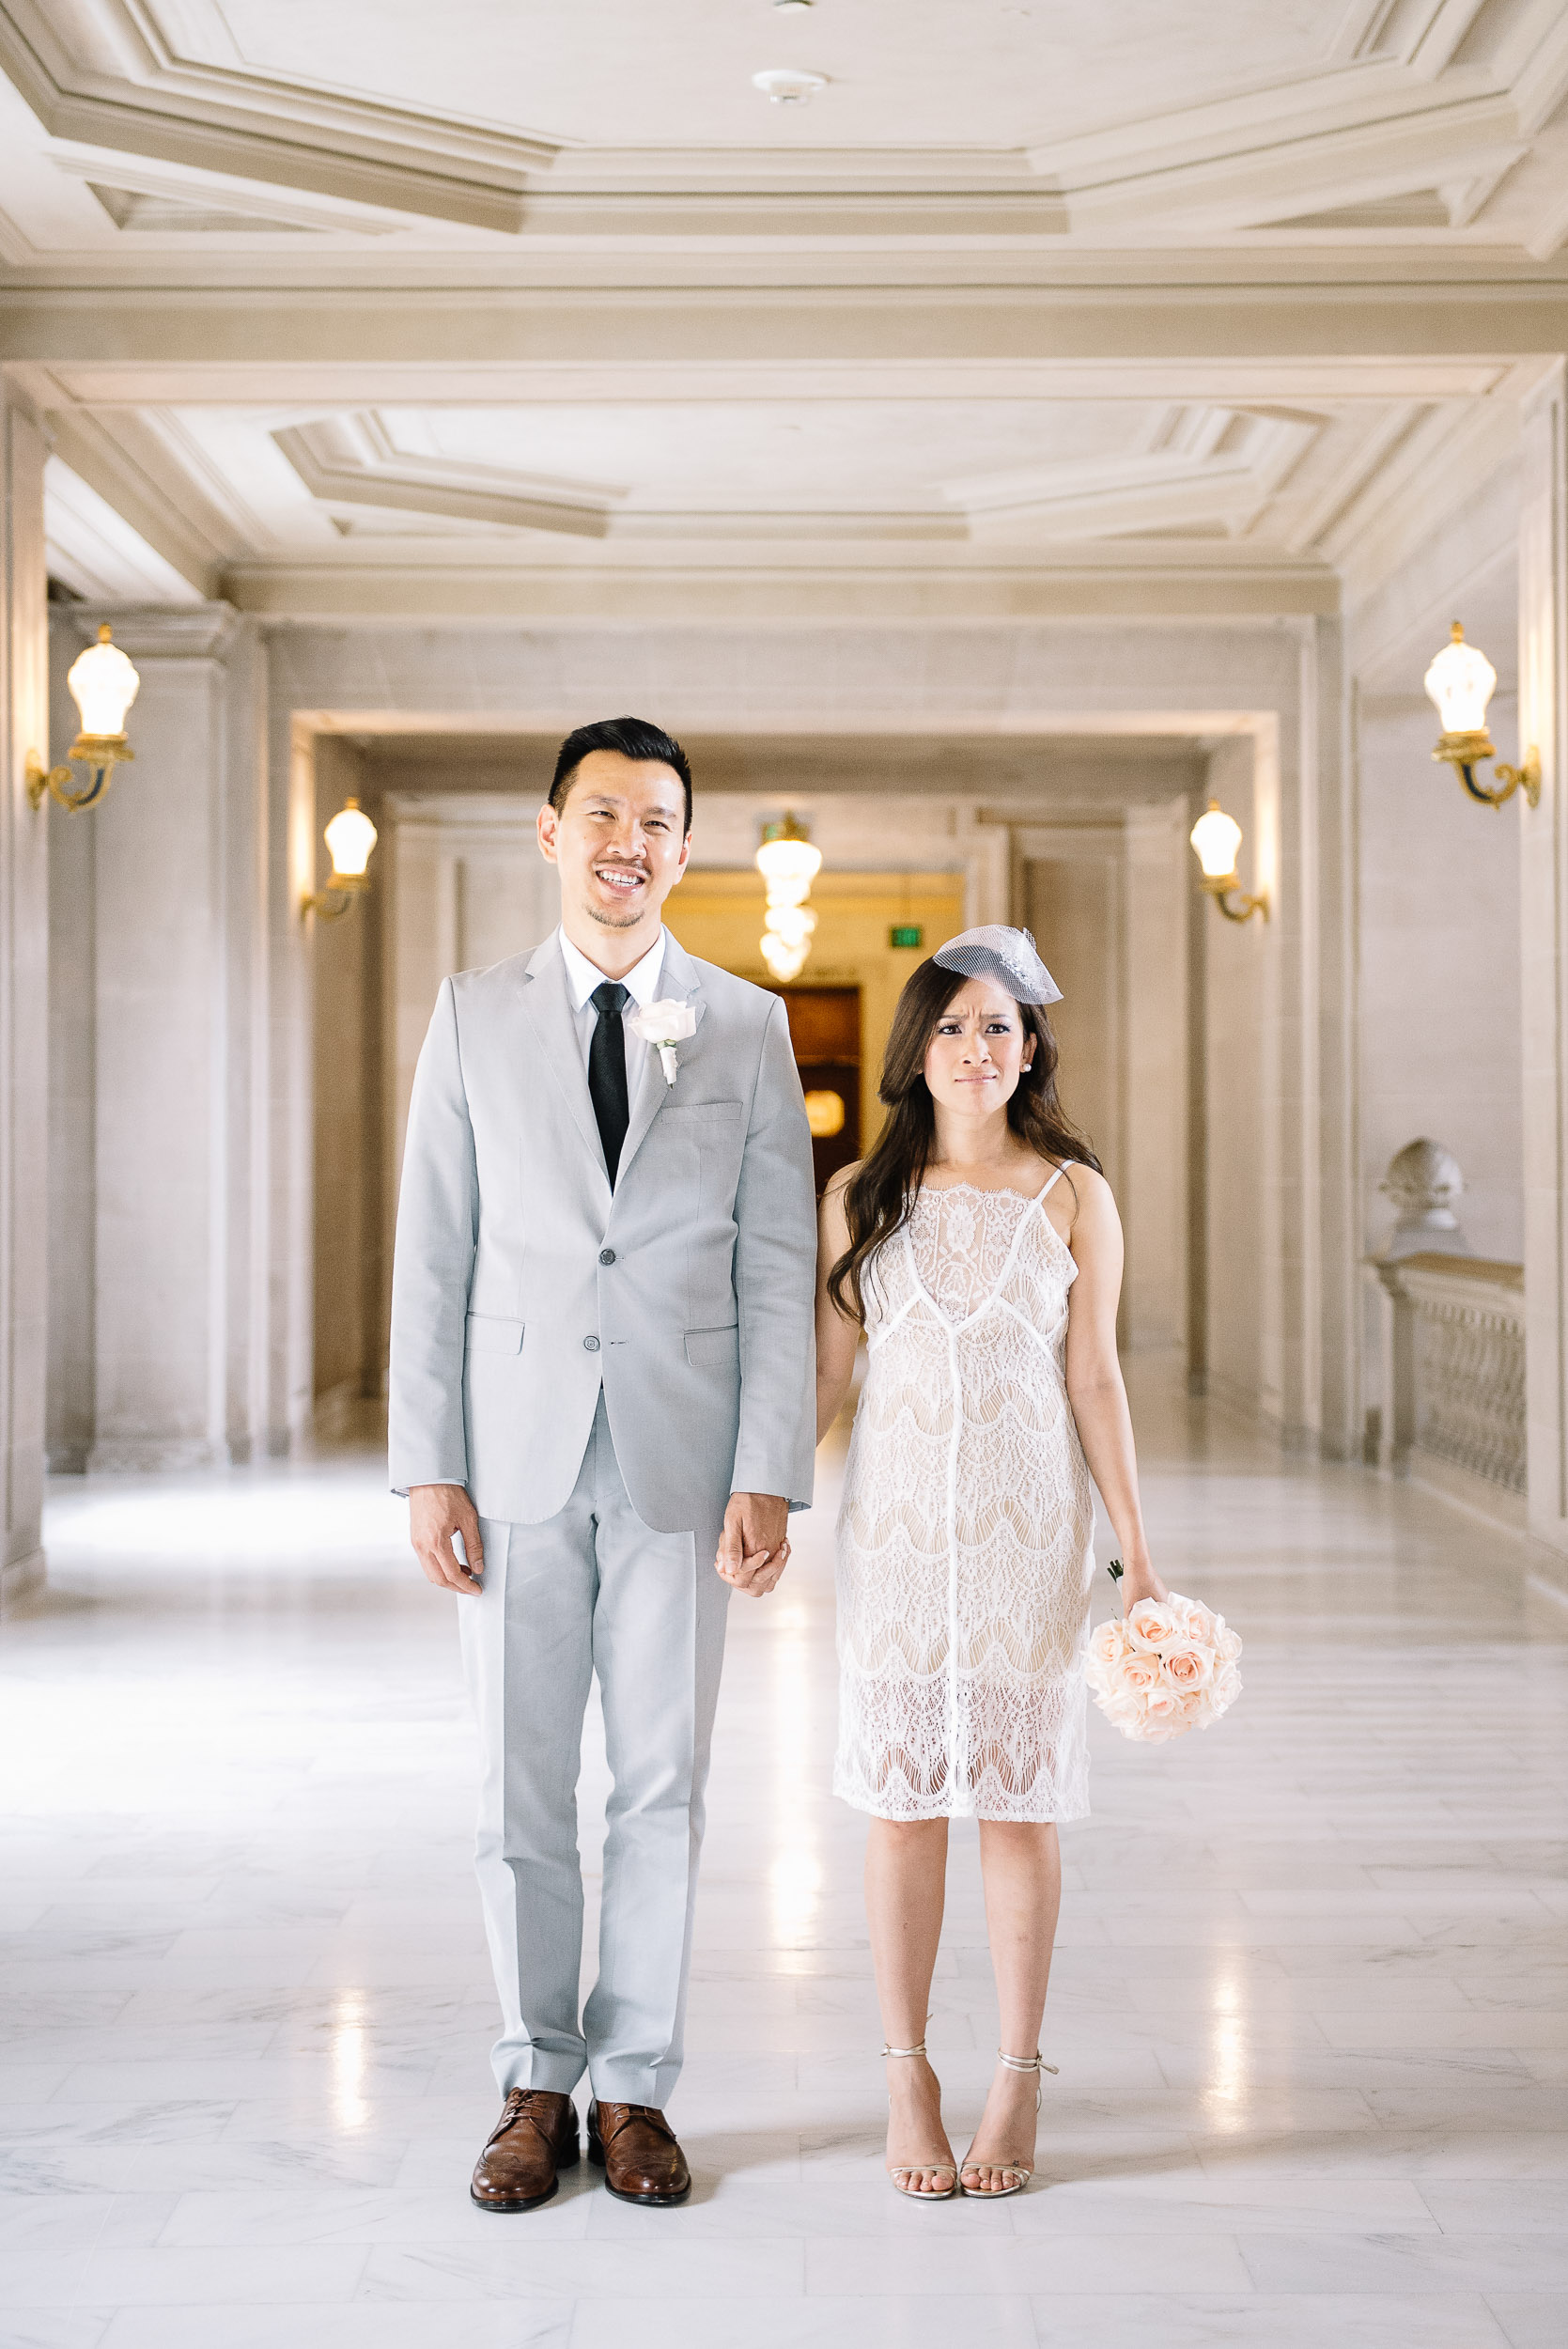 jennifer-jayn-photography-san-francisco-wedding-photographer-gallery-wedding-39.jpg